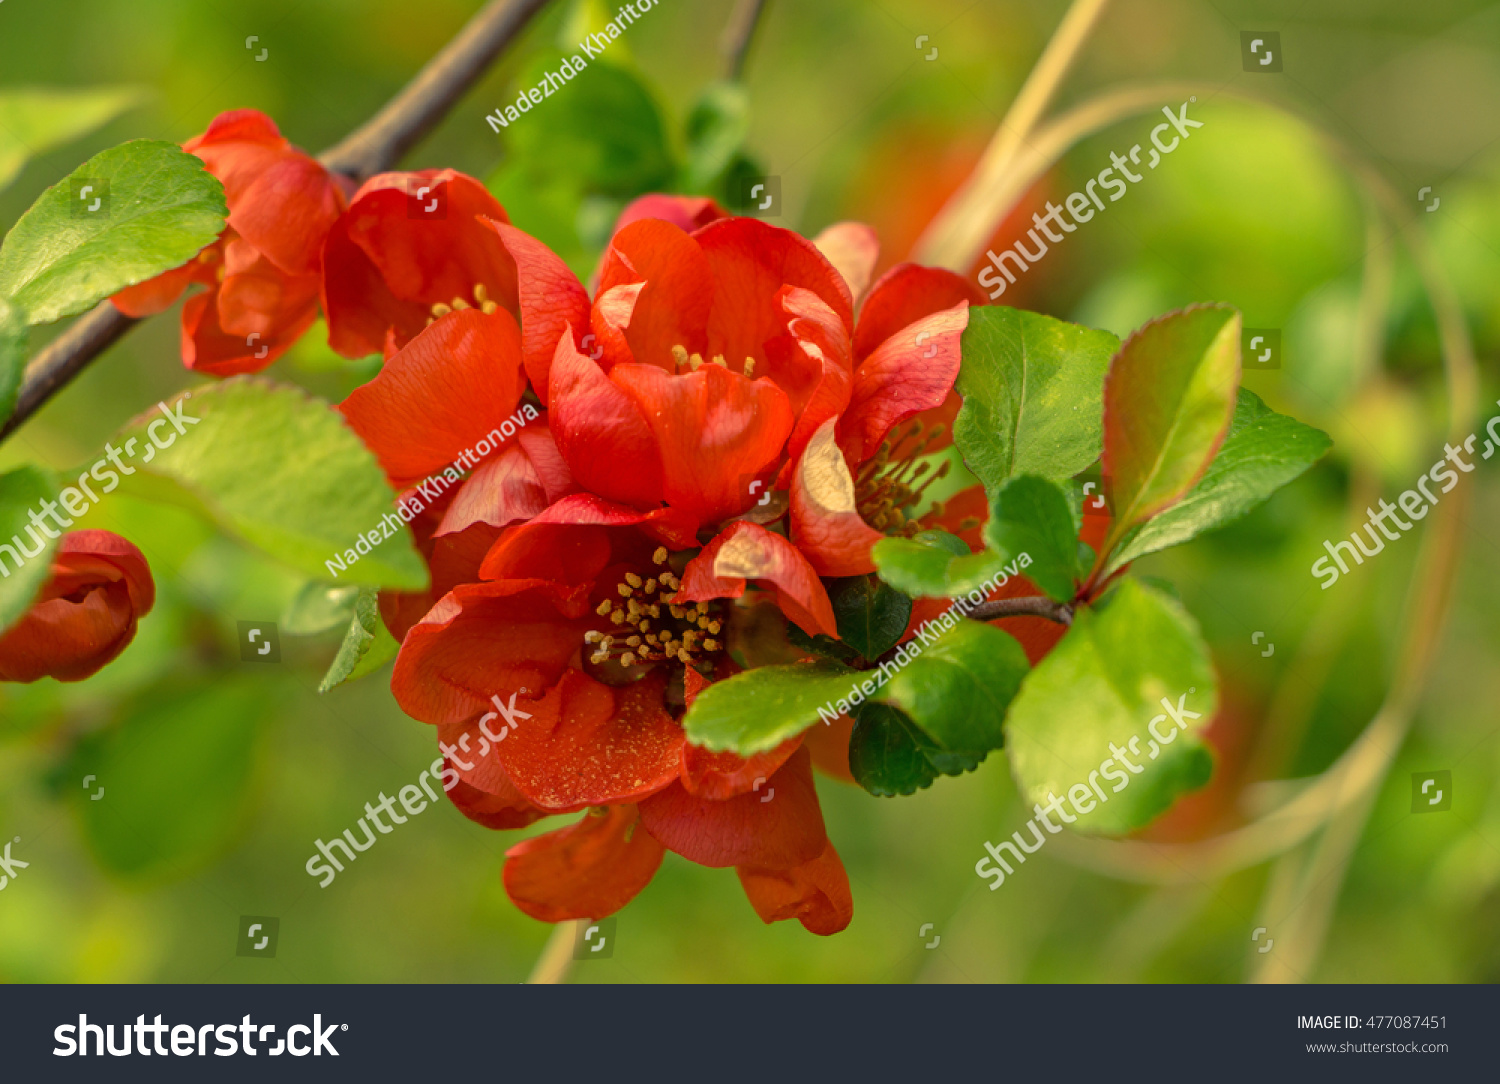 Japan quince red orange flowers green stock photo 477087451 the japan quince red orange flowers and green leaves at spring day with the blurry flowers biocorpaavc Image collections